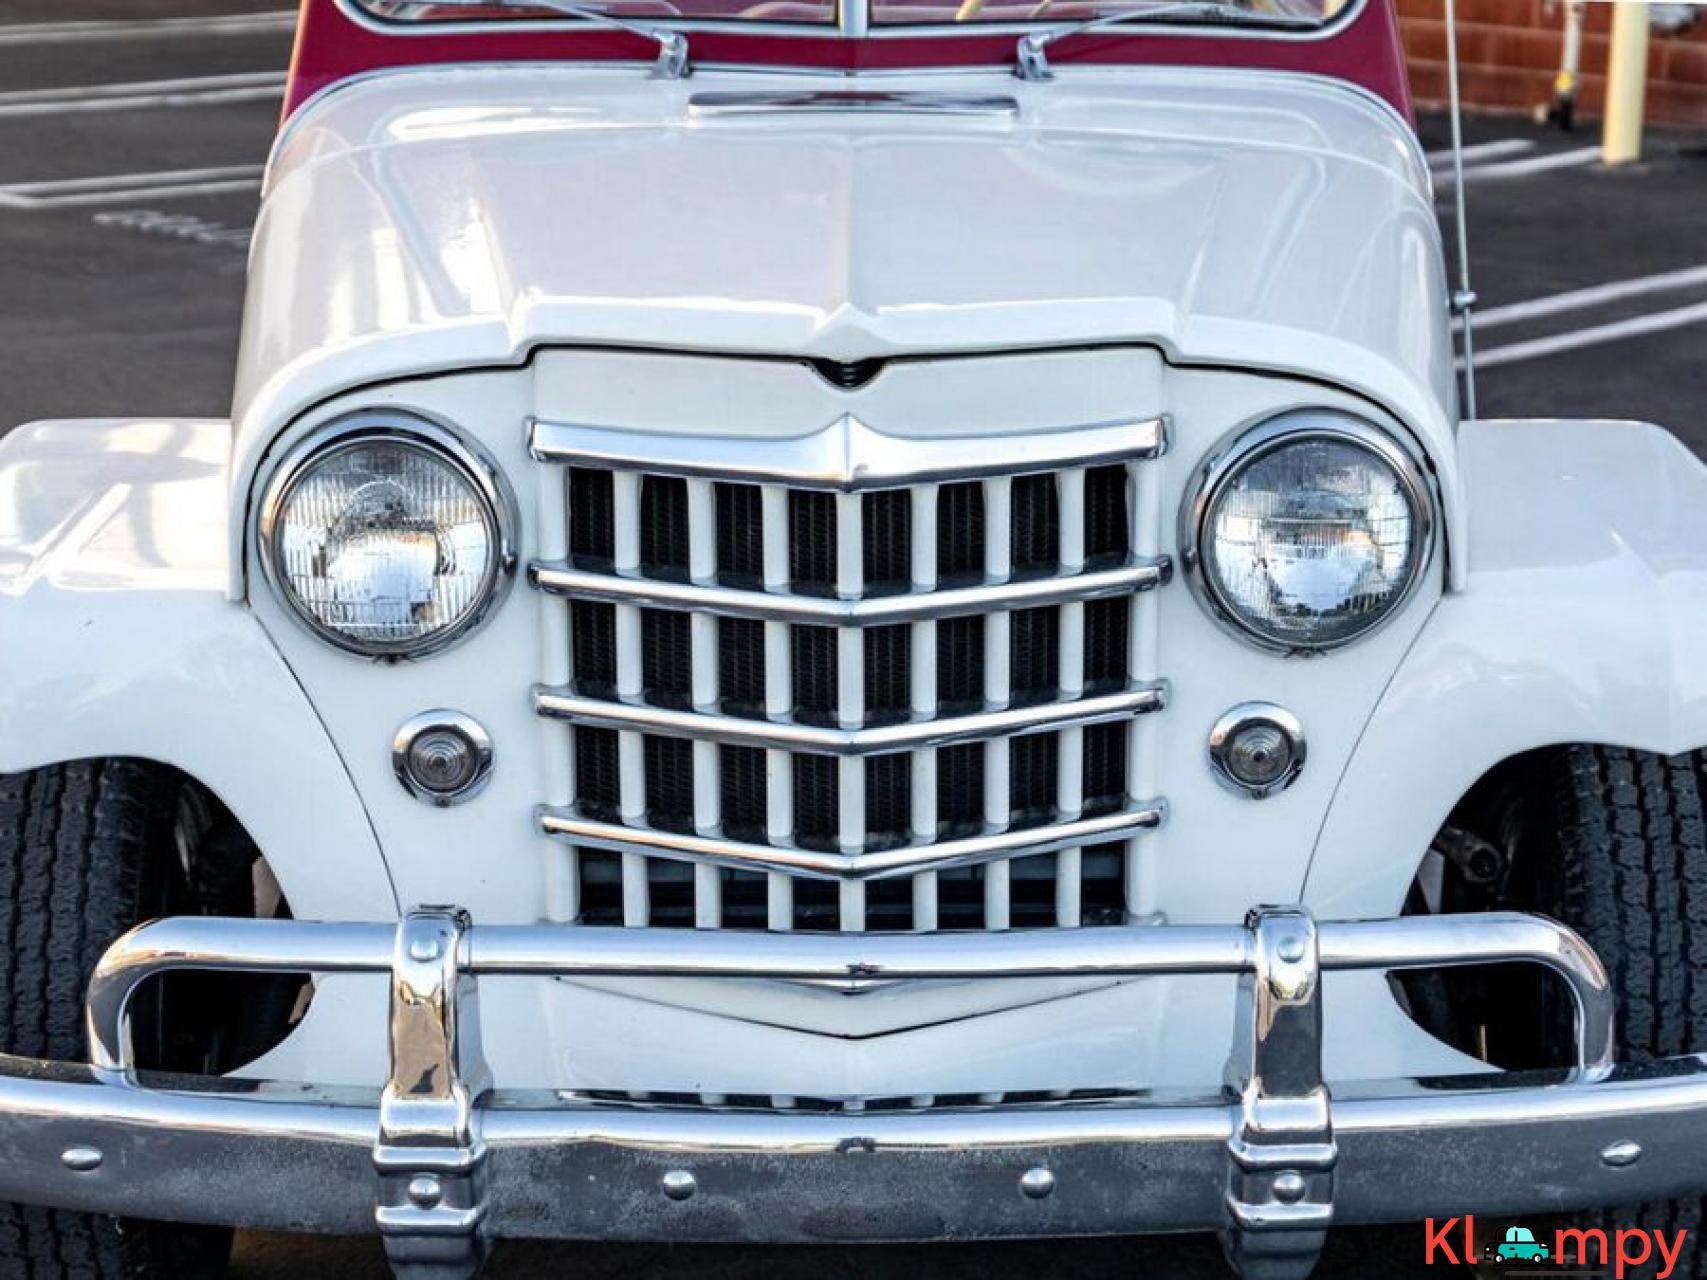 1951 Willys Jeepster Convertible 134.2 cu in 2.2 L - 6/17